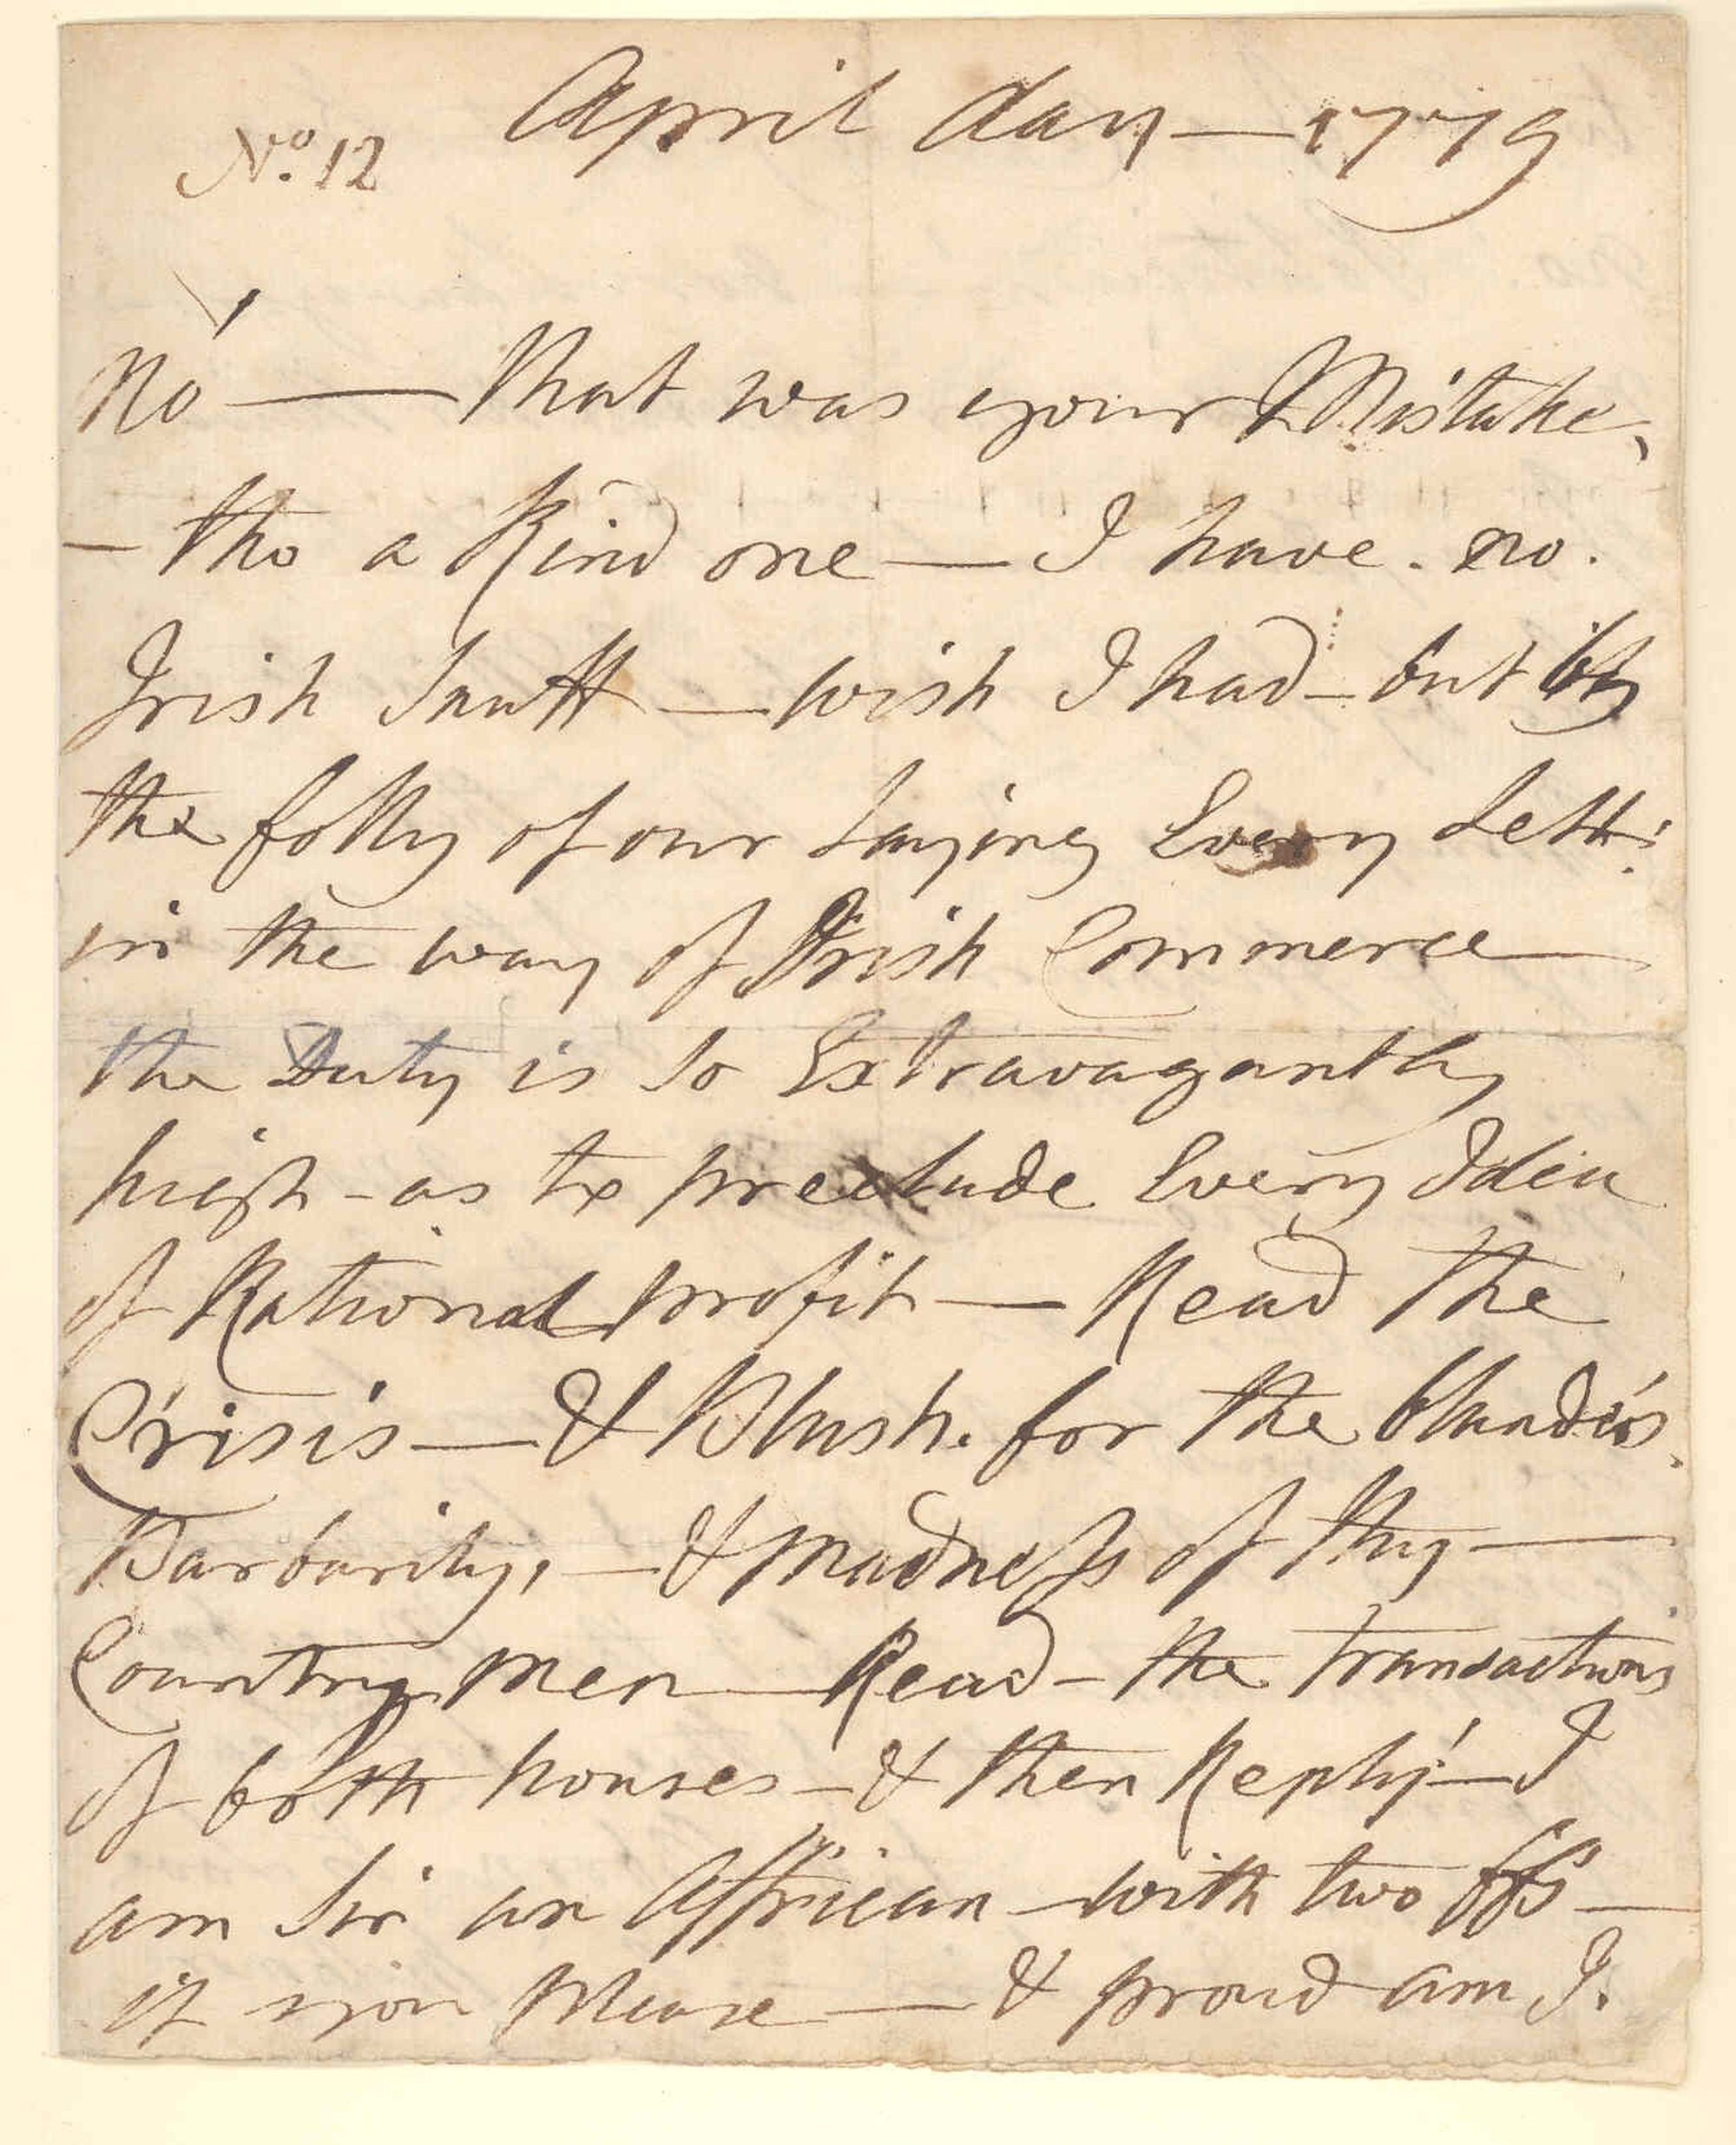 Letter from Ignatius Sancho to William Stevenson, April 1779.